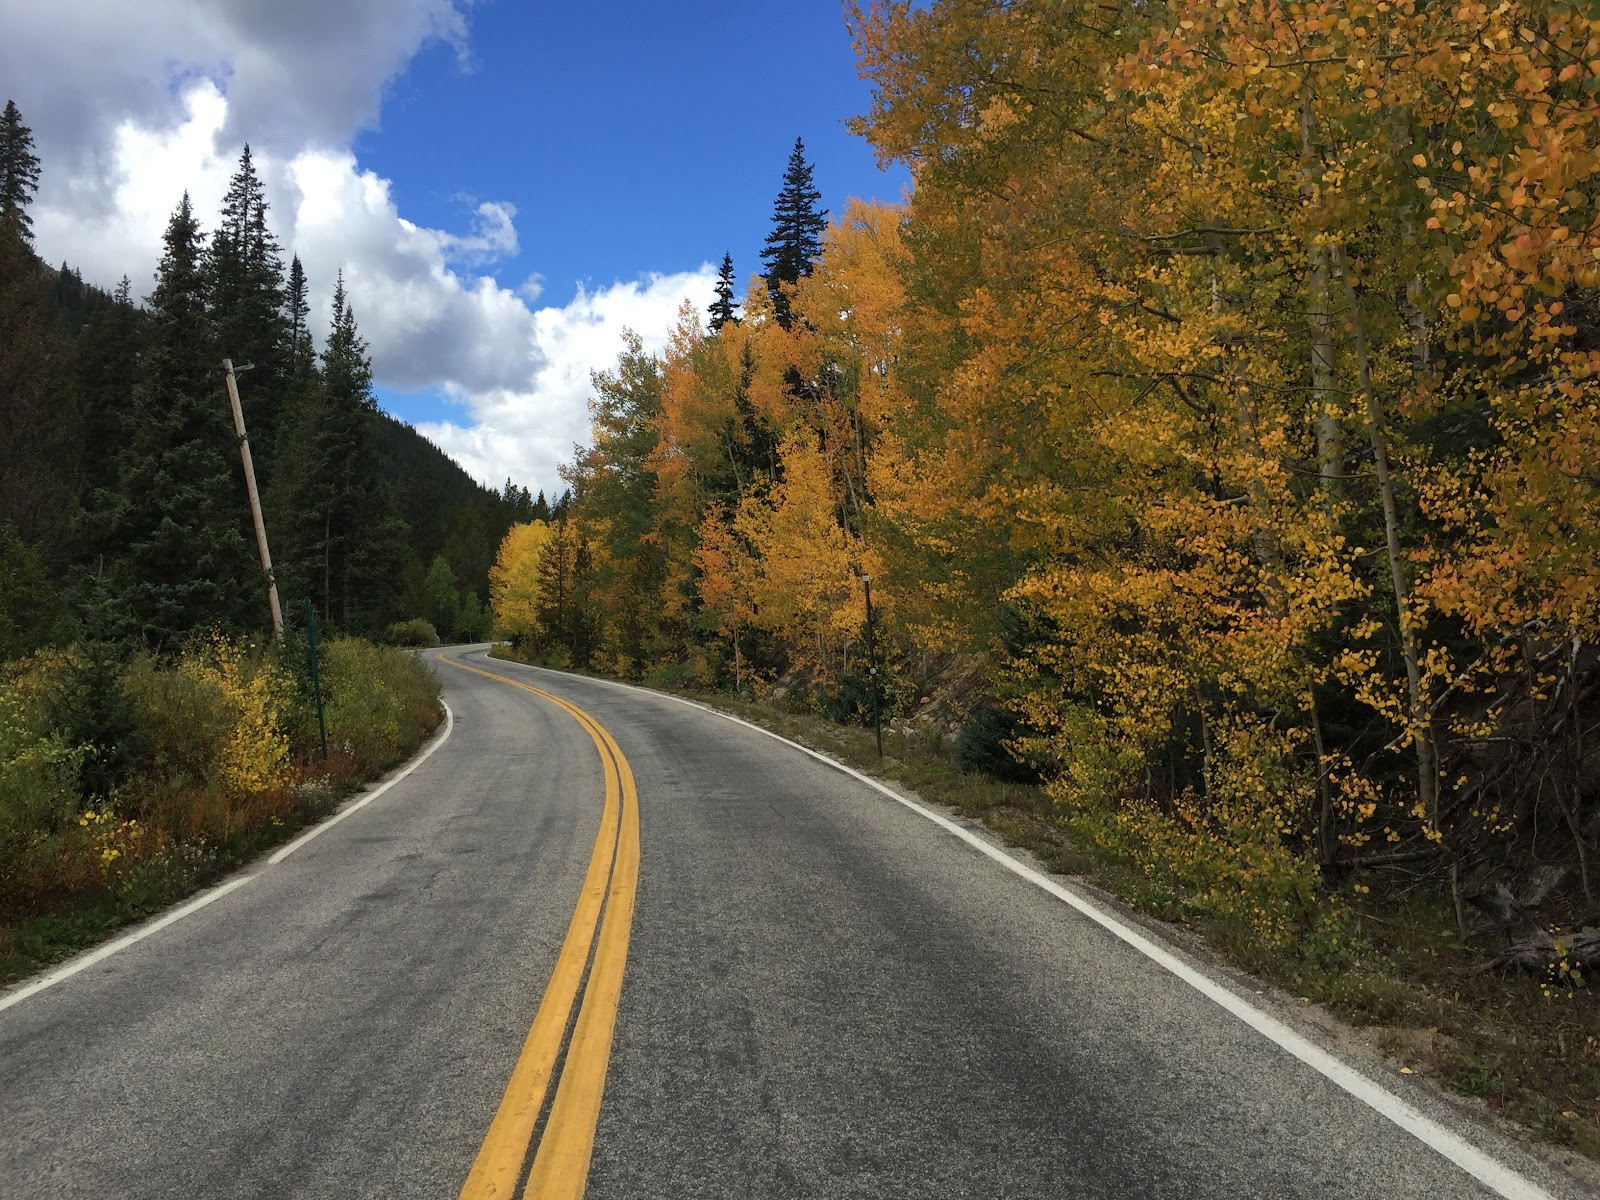 Cycling Independence Pass - trees and road during fall